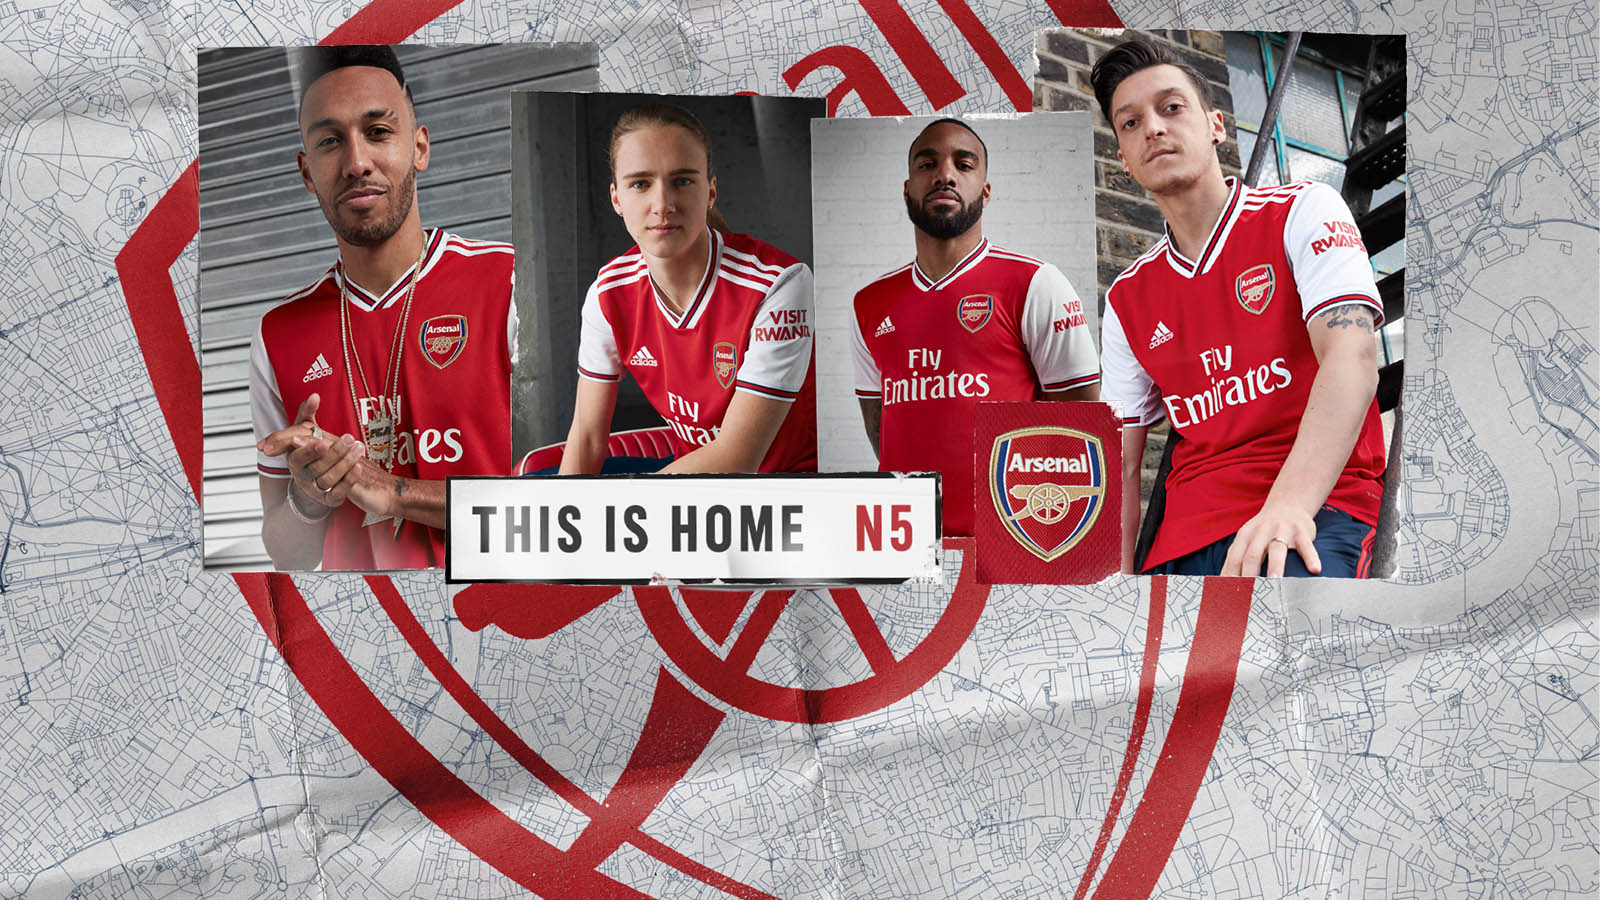 Adidas And Arsenal Launch New Home Kit